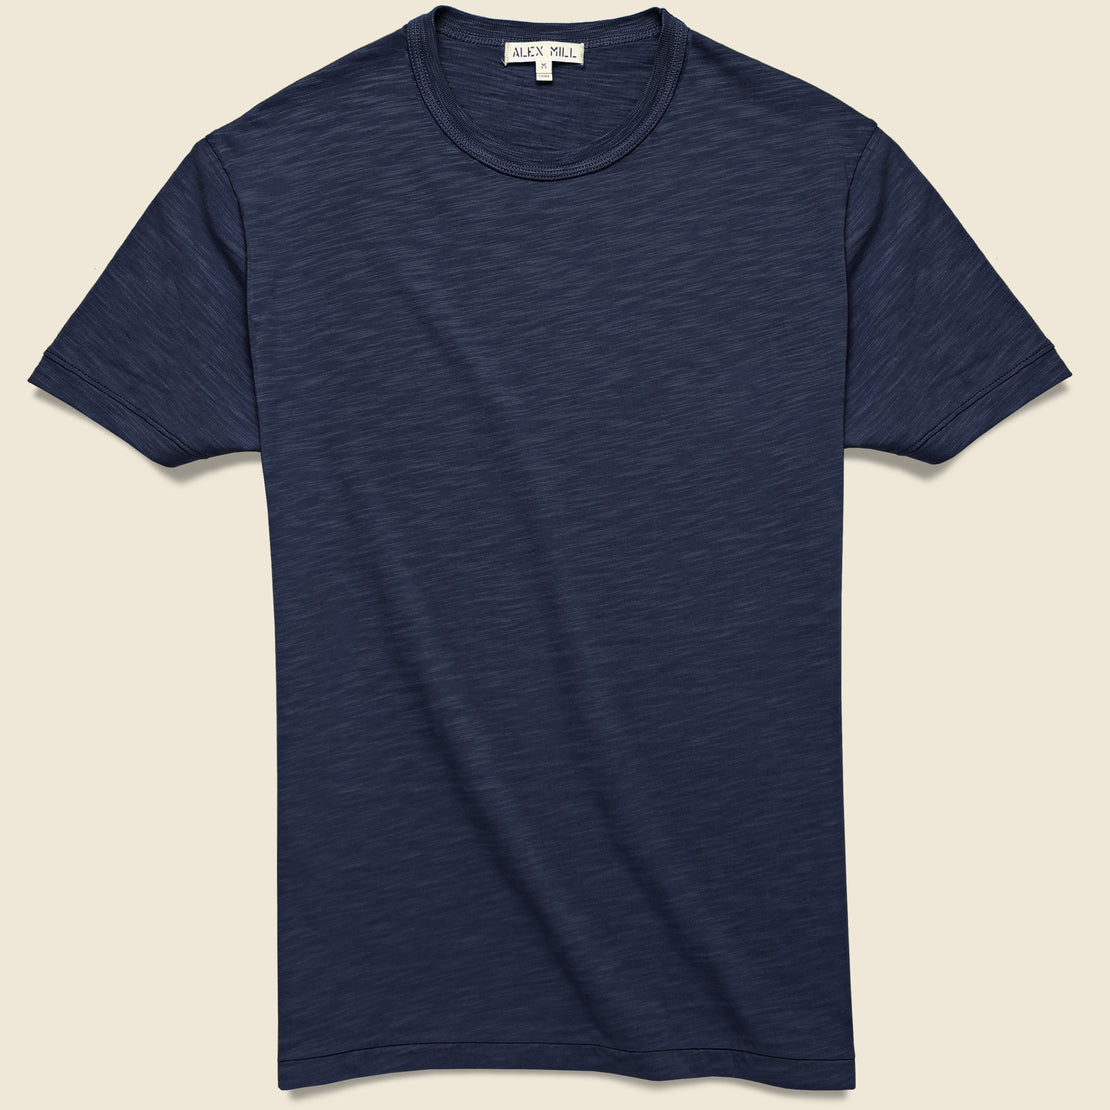 Alex Mill Standard Crew Tee - Navy